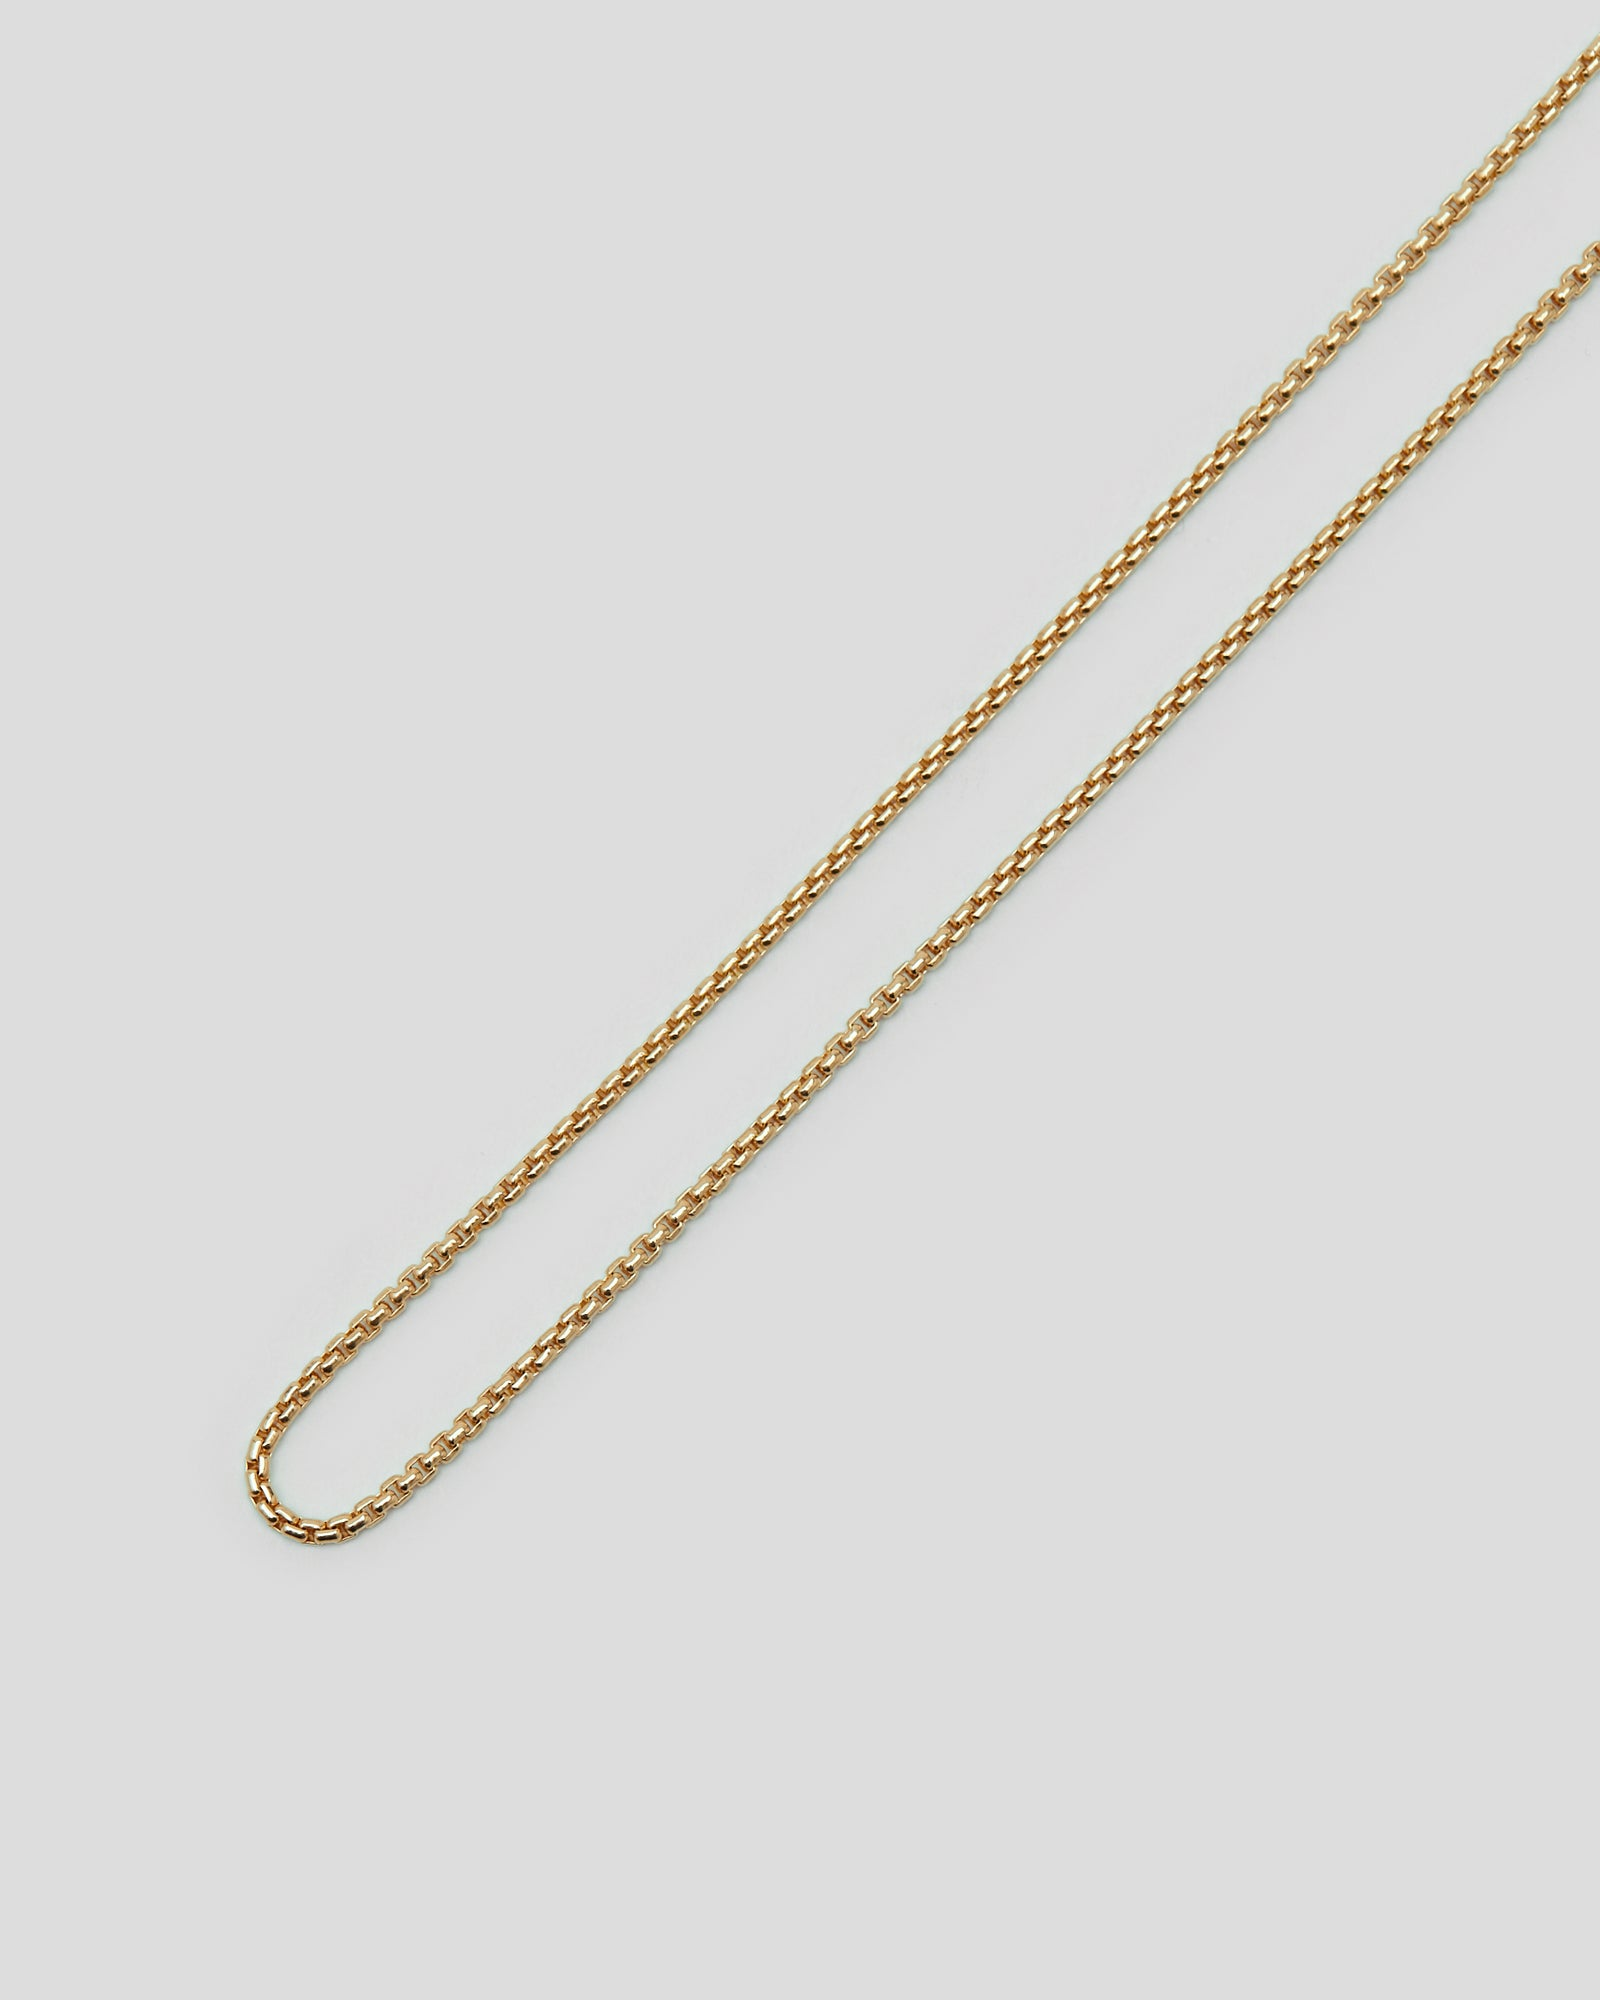 Venetian Chain Single S in Gold